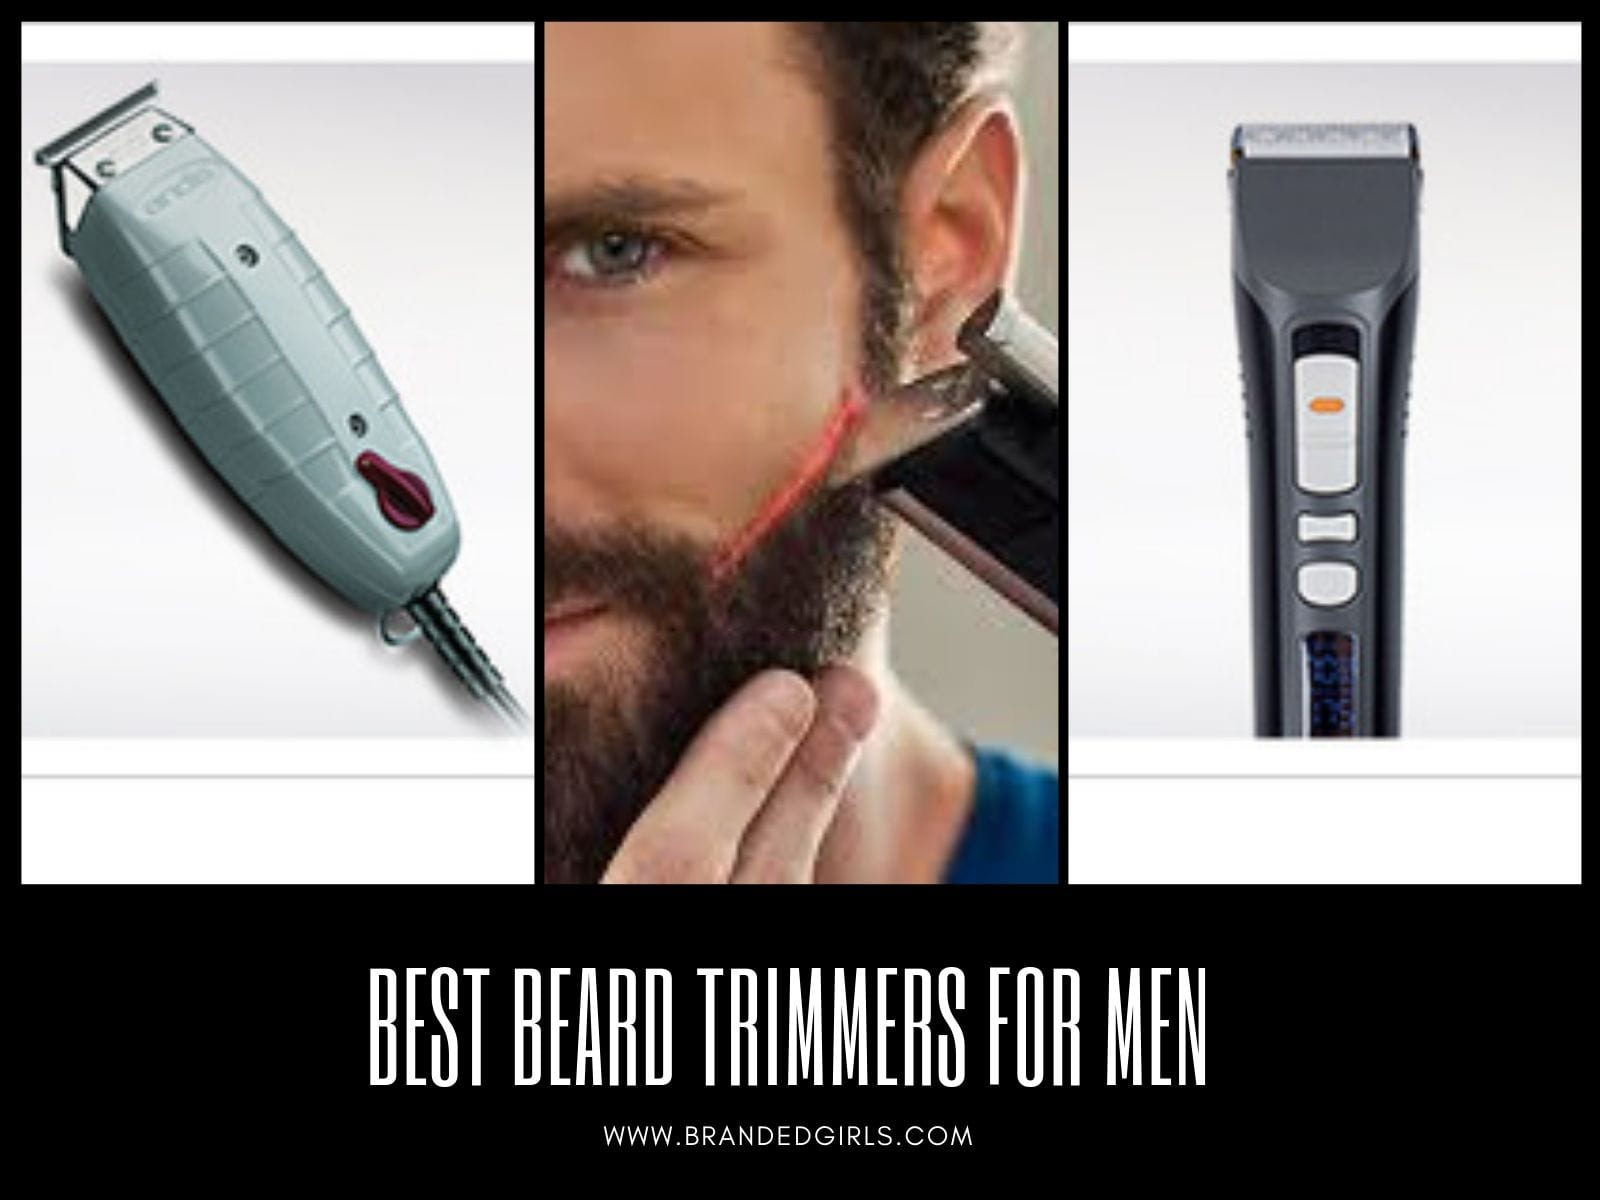 Beard-Trimmers-1 Top 10 Best Beard Trimmers For Men To Use In 2019 - Reviews